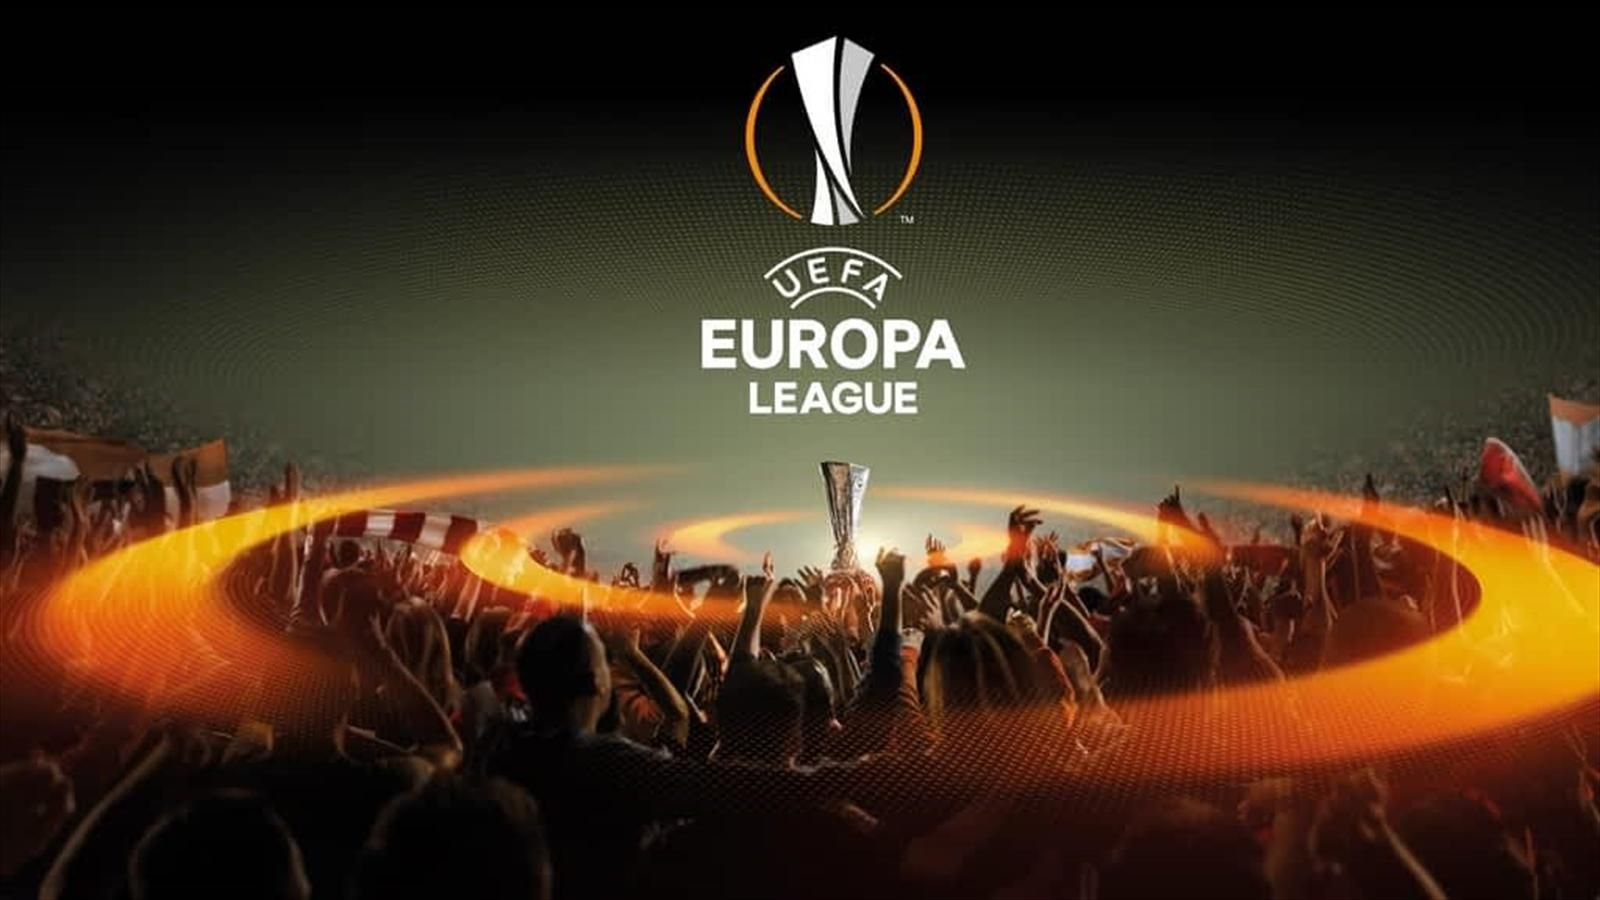 Livescore Full Europa League Quarter Final 1st Leg